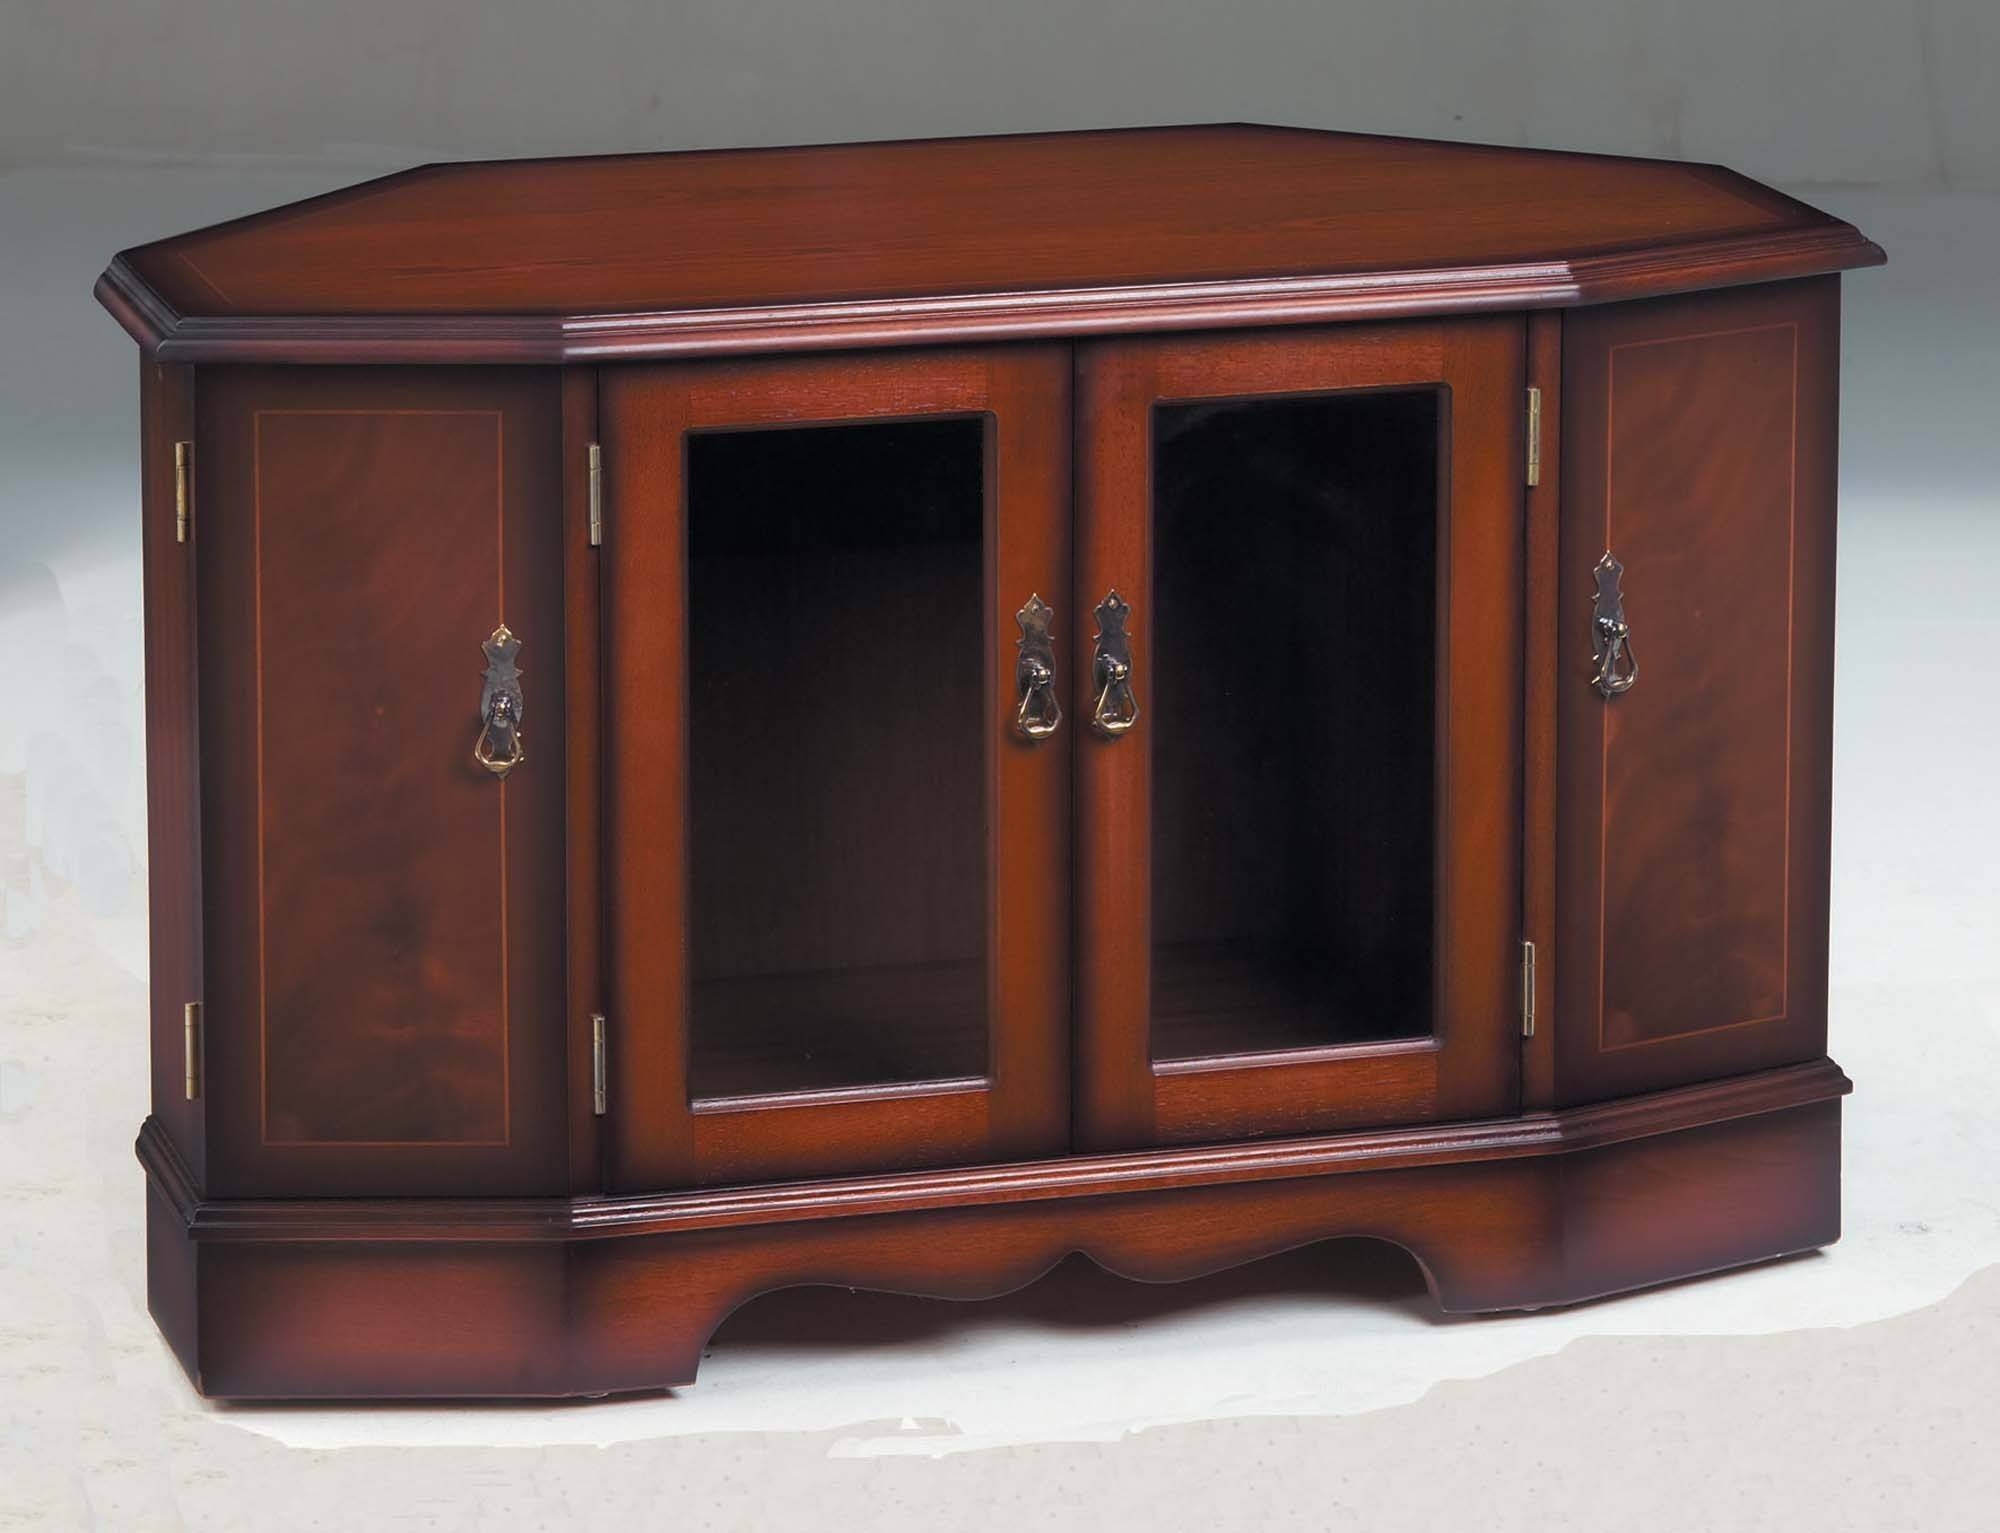 Strongbow Mahogany 1037 Corner Tv Cabinet | Tr Hayes - Furniture with Mahogany Corner Tv Cabinets (Image 15 of 15)